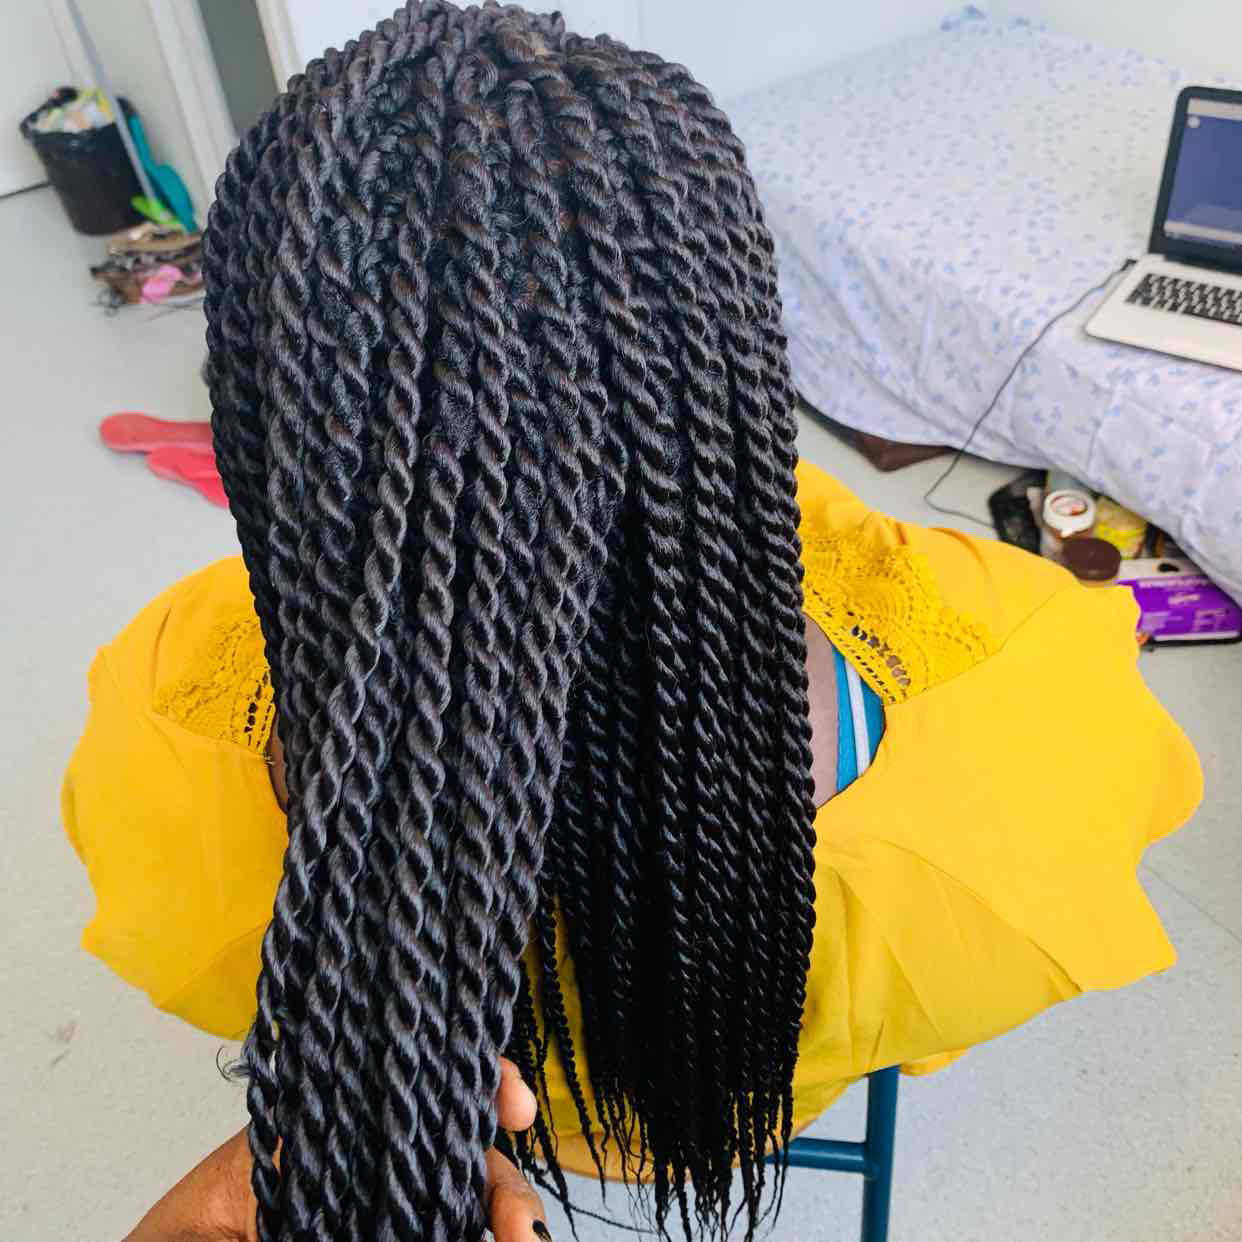 salon de coiffure afro tresse tresses box braids crochet braids vanilles tissages paris 75 77 78 91 92 93 94 95 AVQADUDS